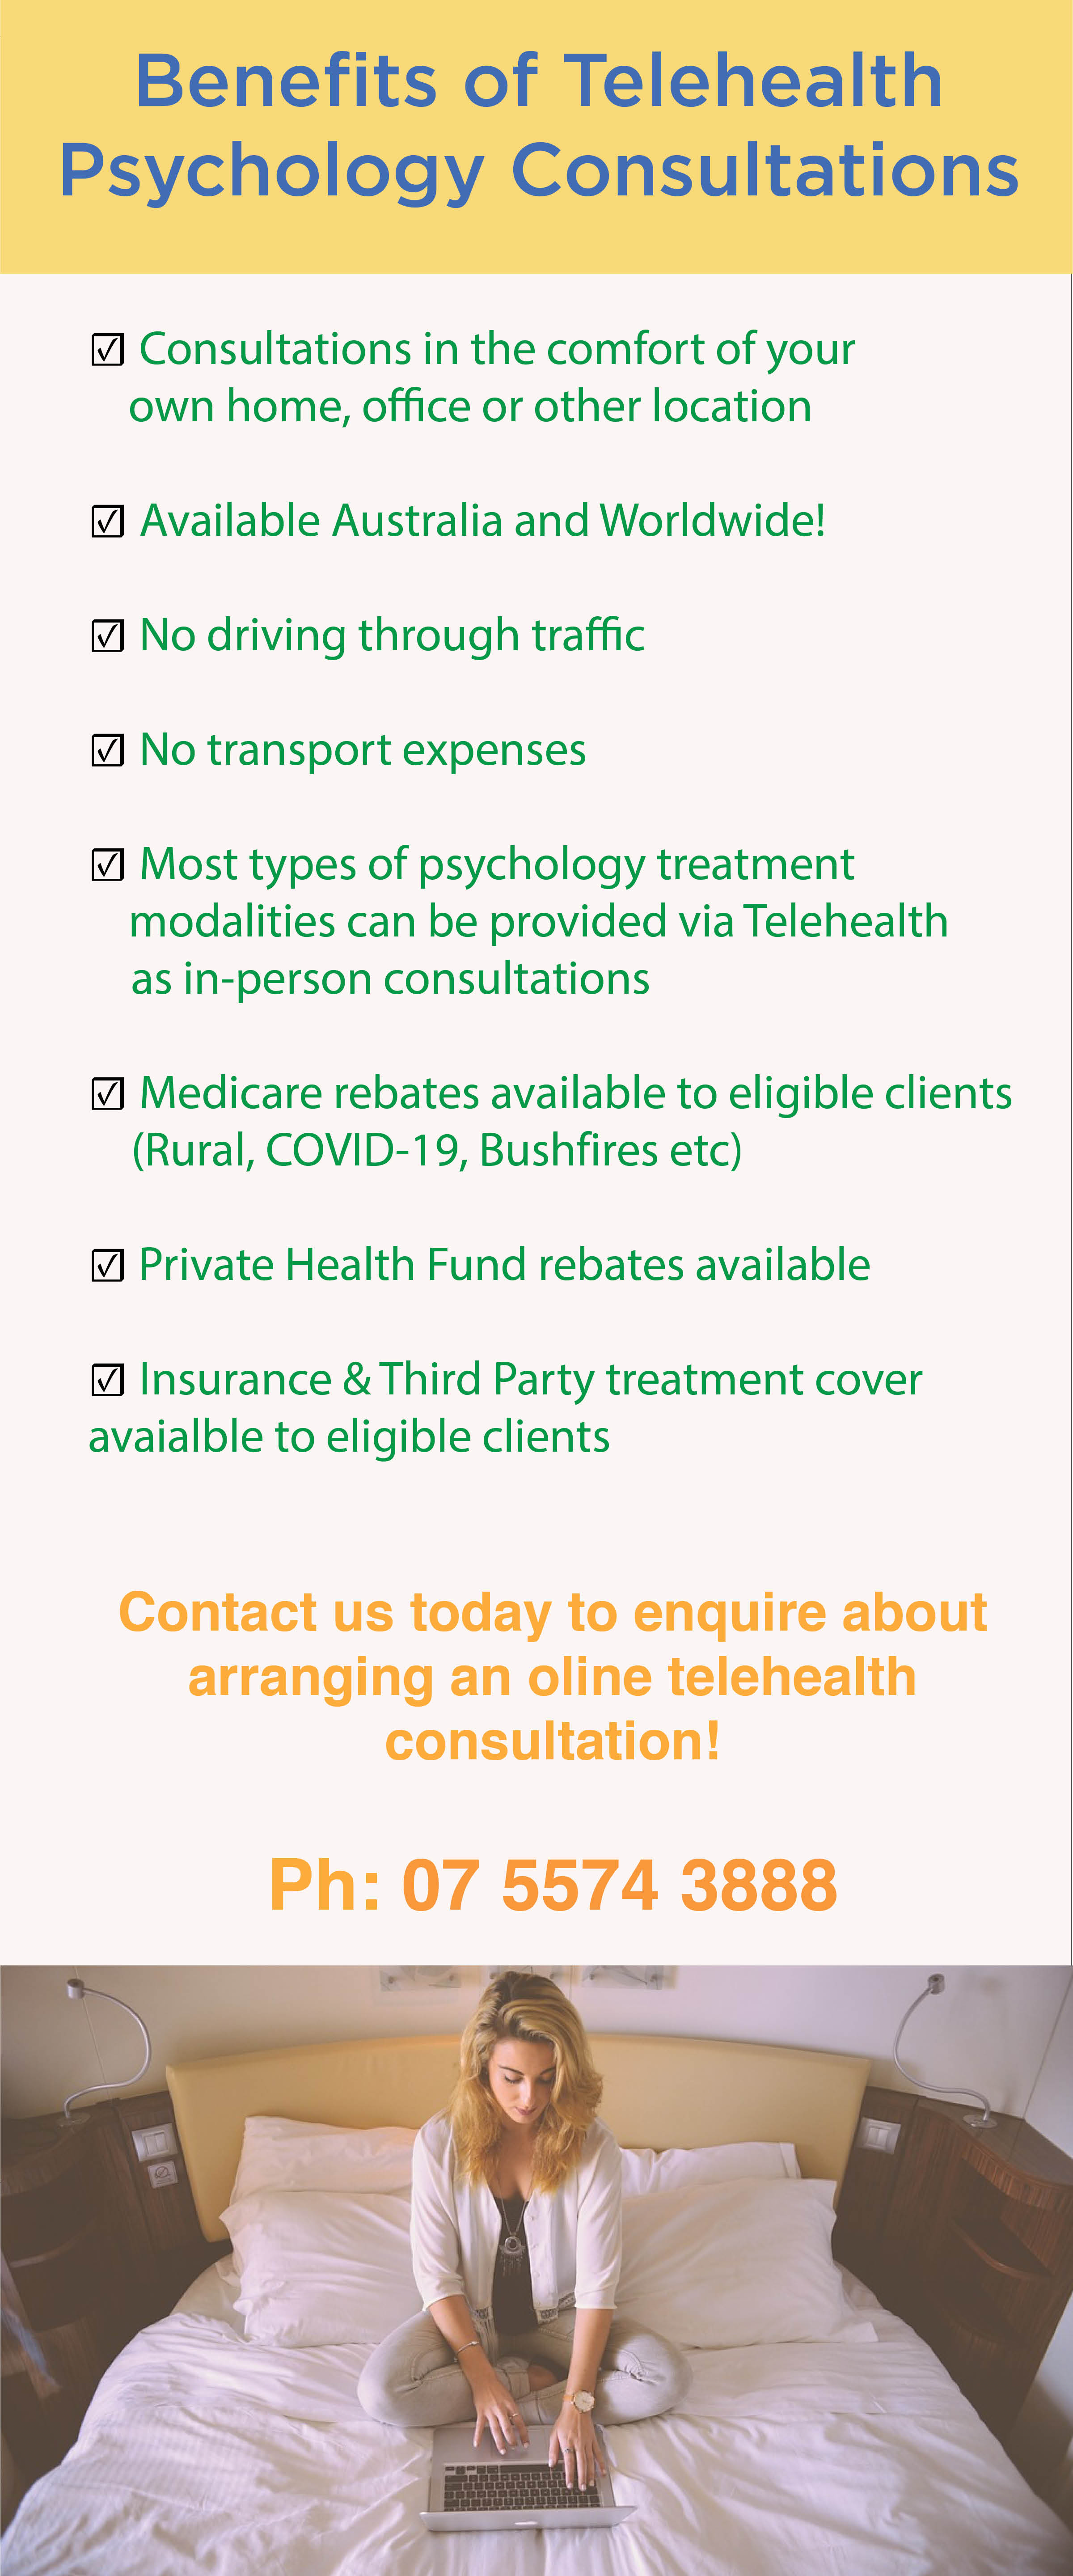 telehealth psychology COVID-19